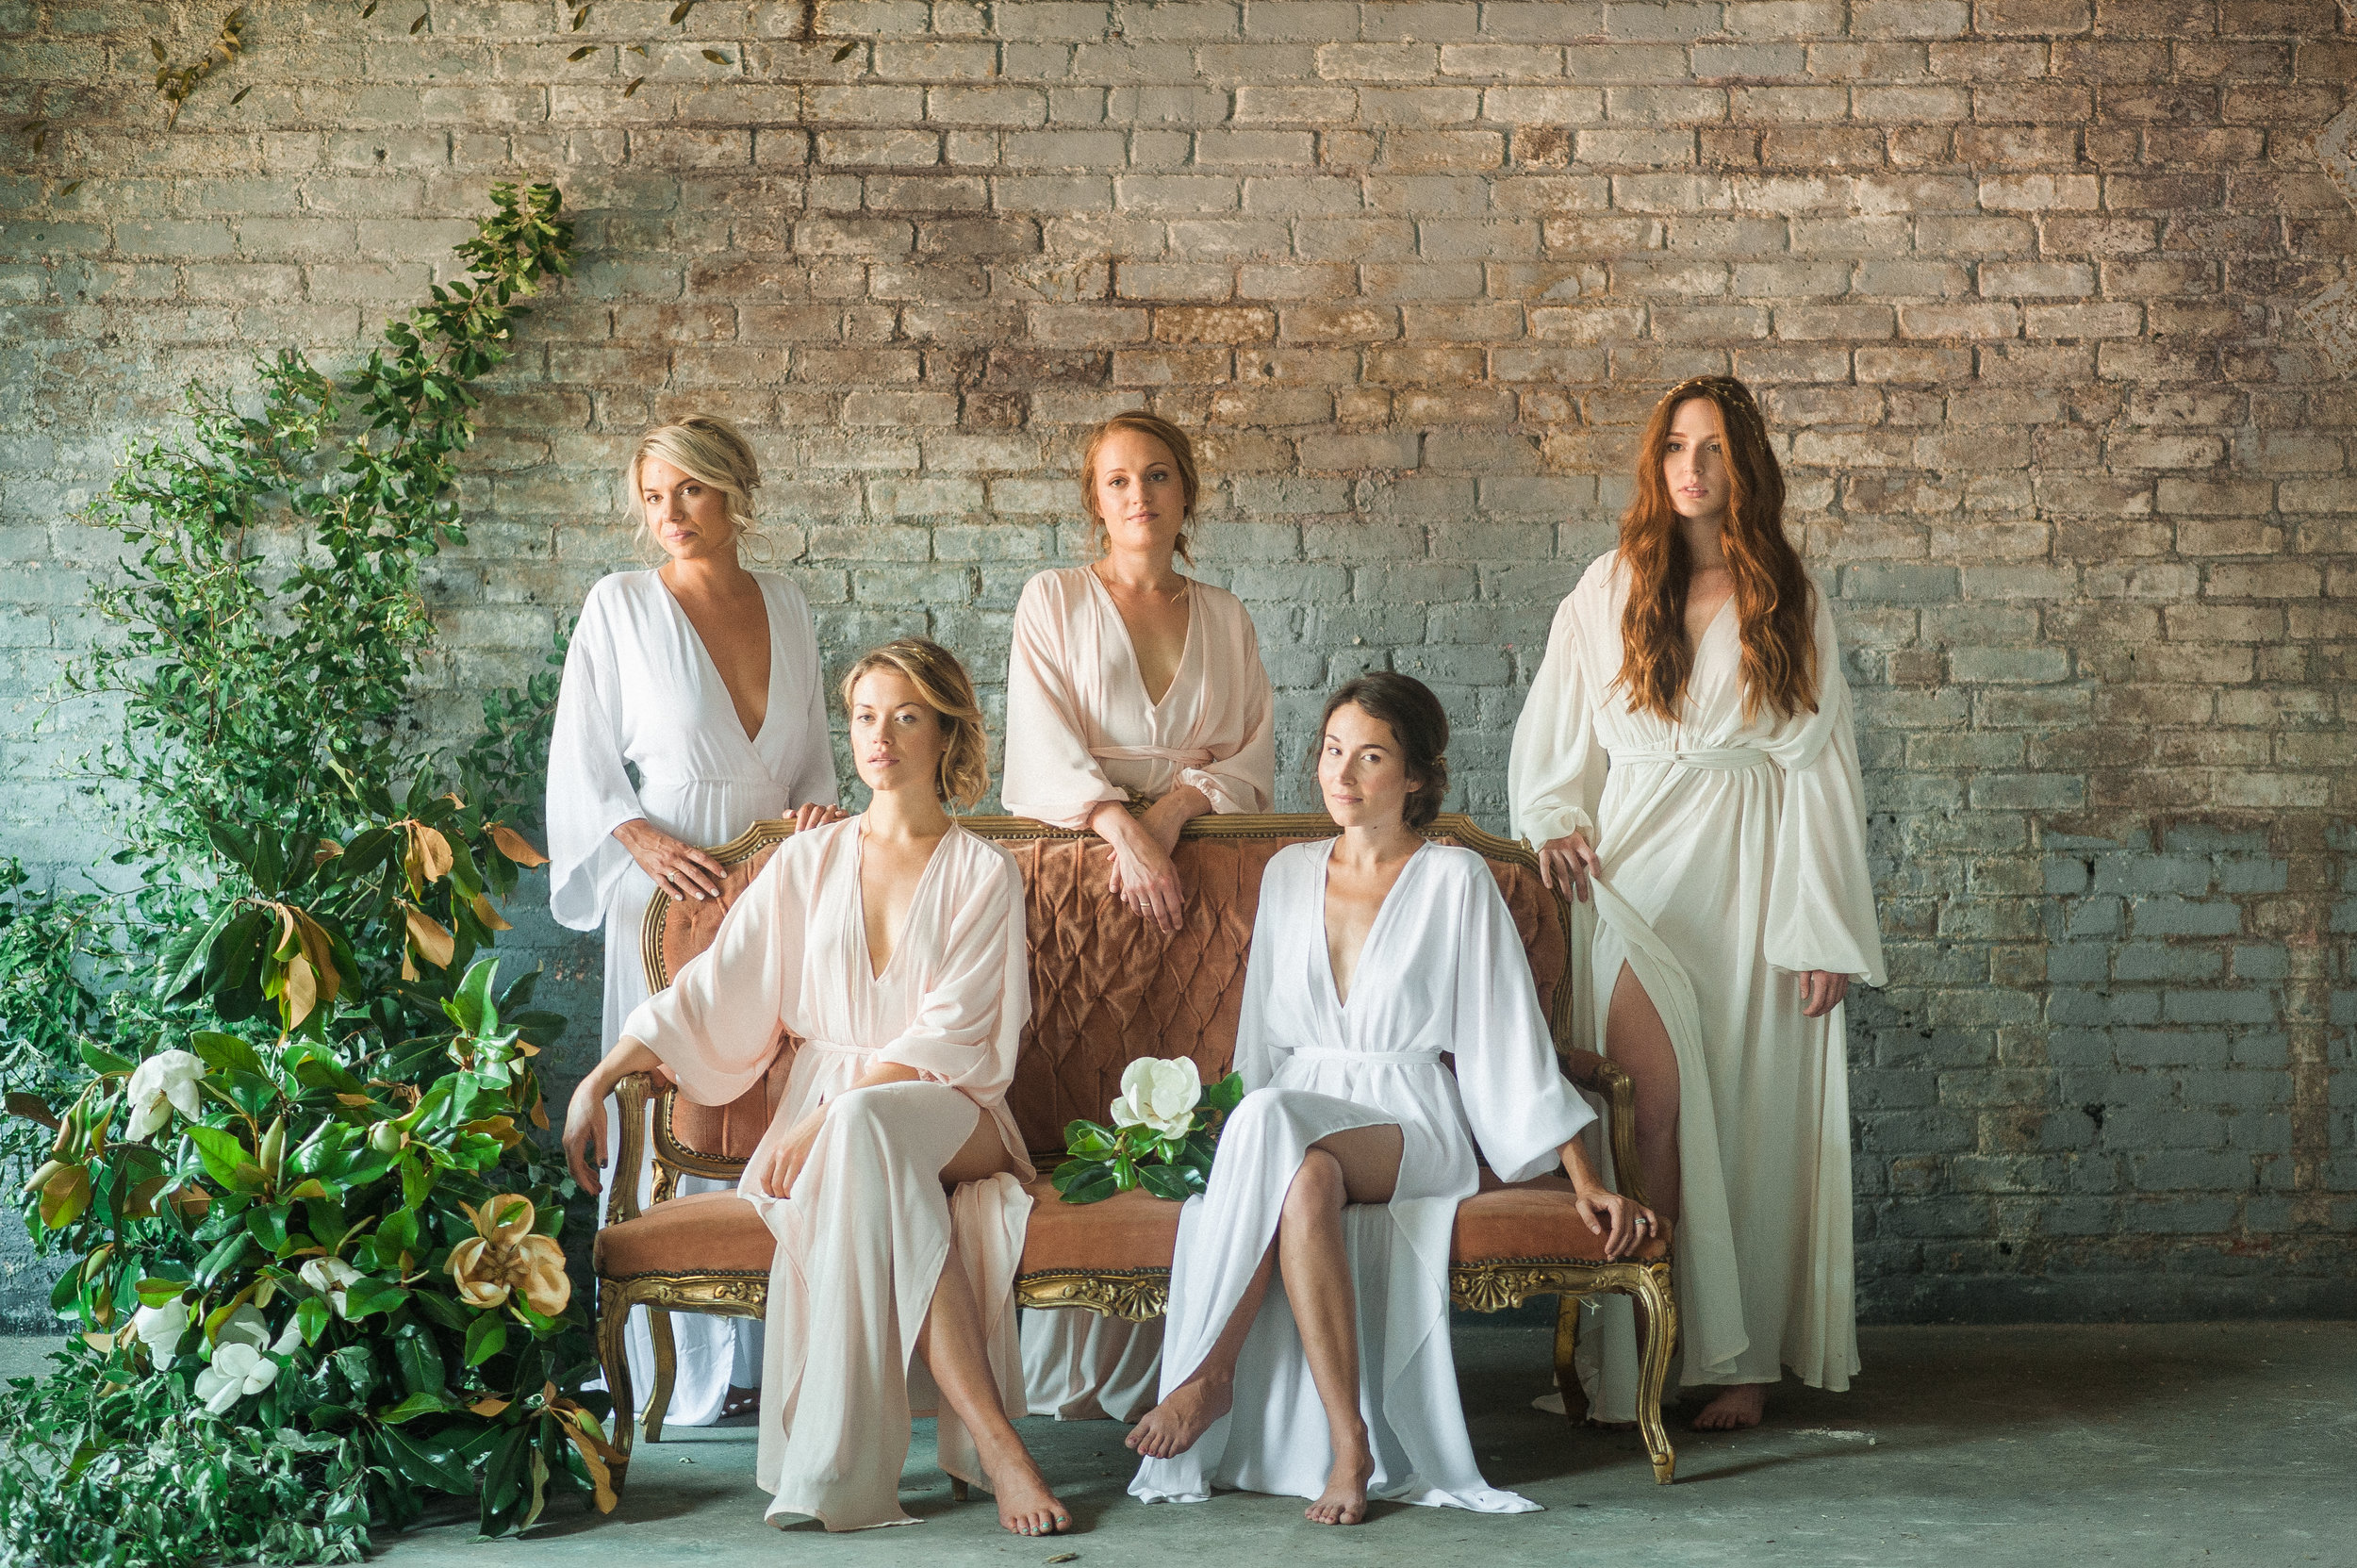 My Story - Established in Charlottesville, Virginia, Brianna launched Mood & Muse in early 2017 while she worked as a fine art wedding and editorial hairstylist. She found that her brides were always on the hunt for designer bridal accessories and robes. As their options were limited to only a few stores, she decided to open up her own boutique and partner with high end designers . Combining her love of fashion and the bridal industry, she created a business for the Romantic, Boho, and Minimalist at heart.